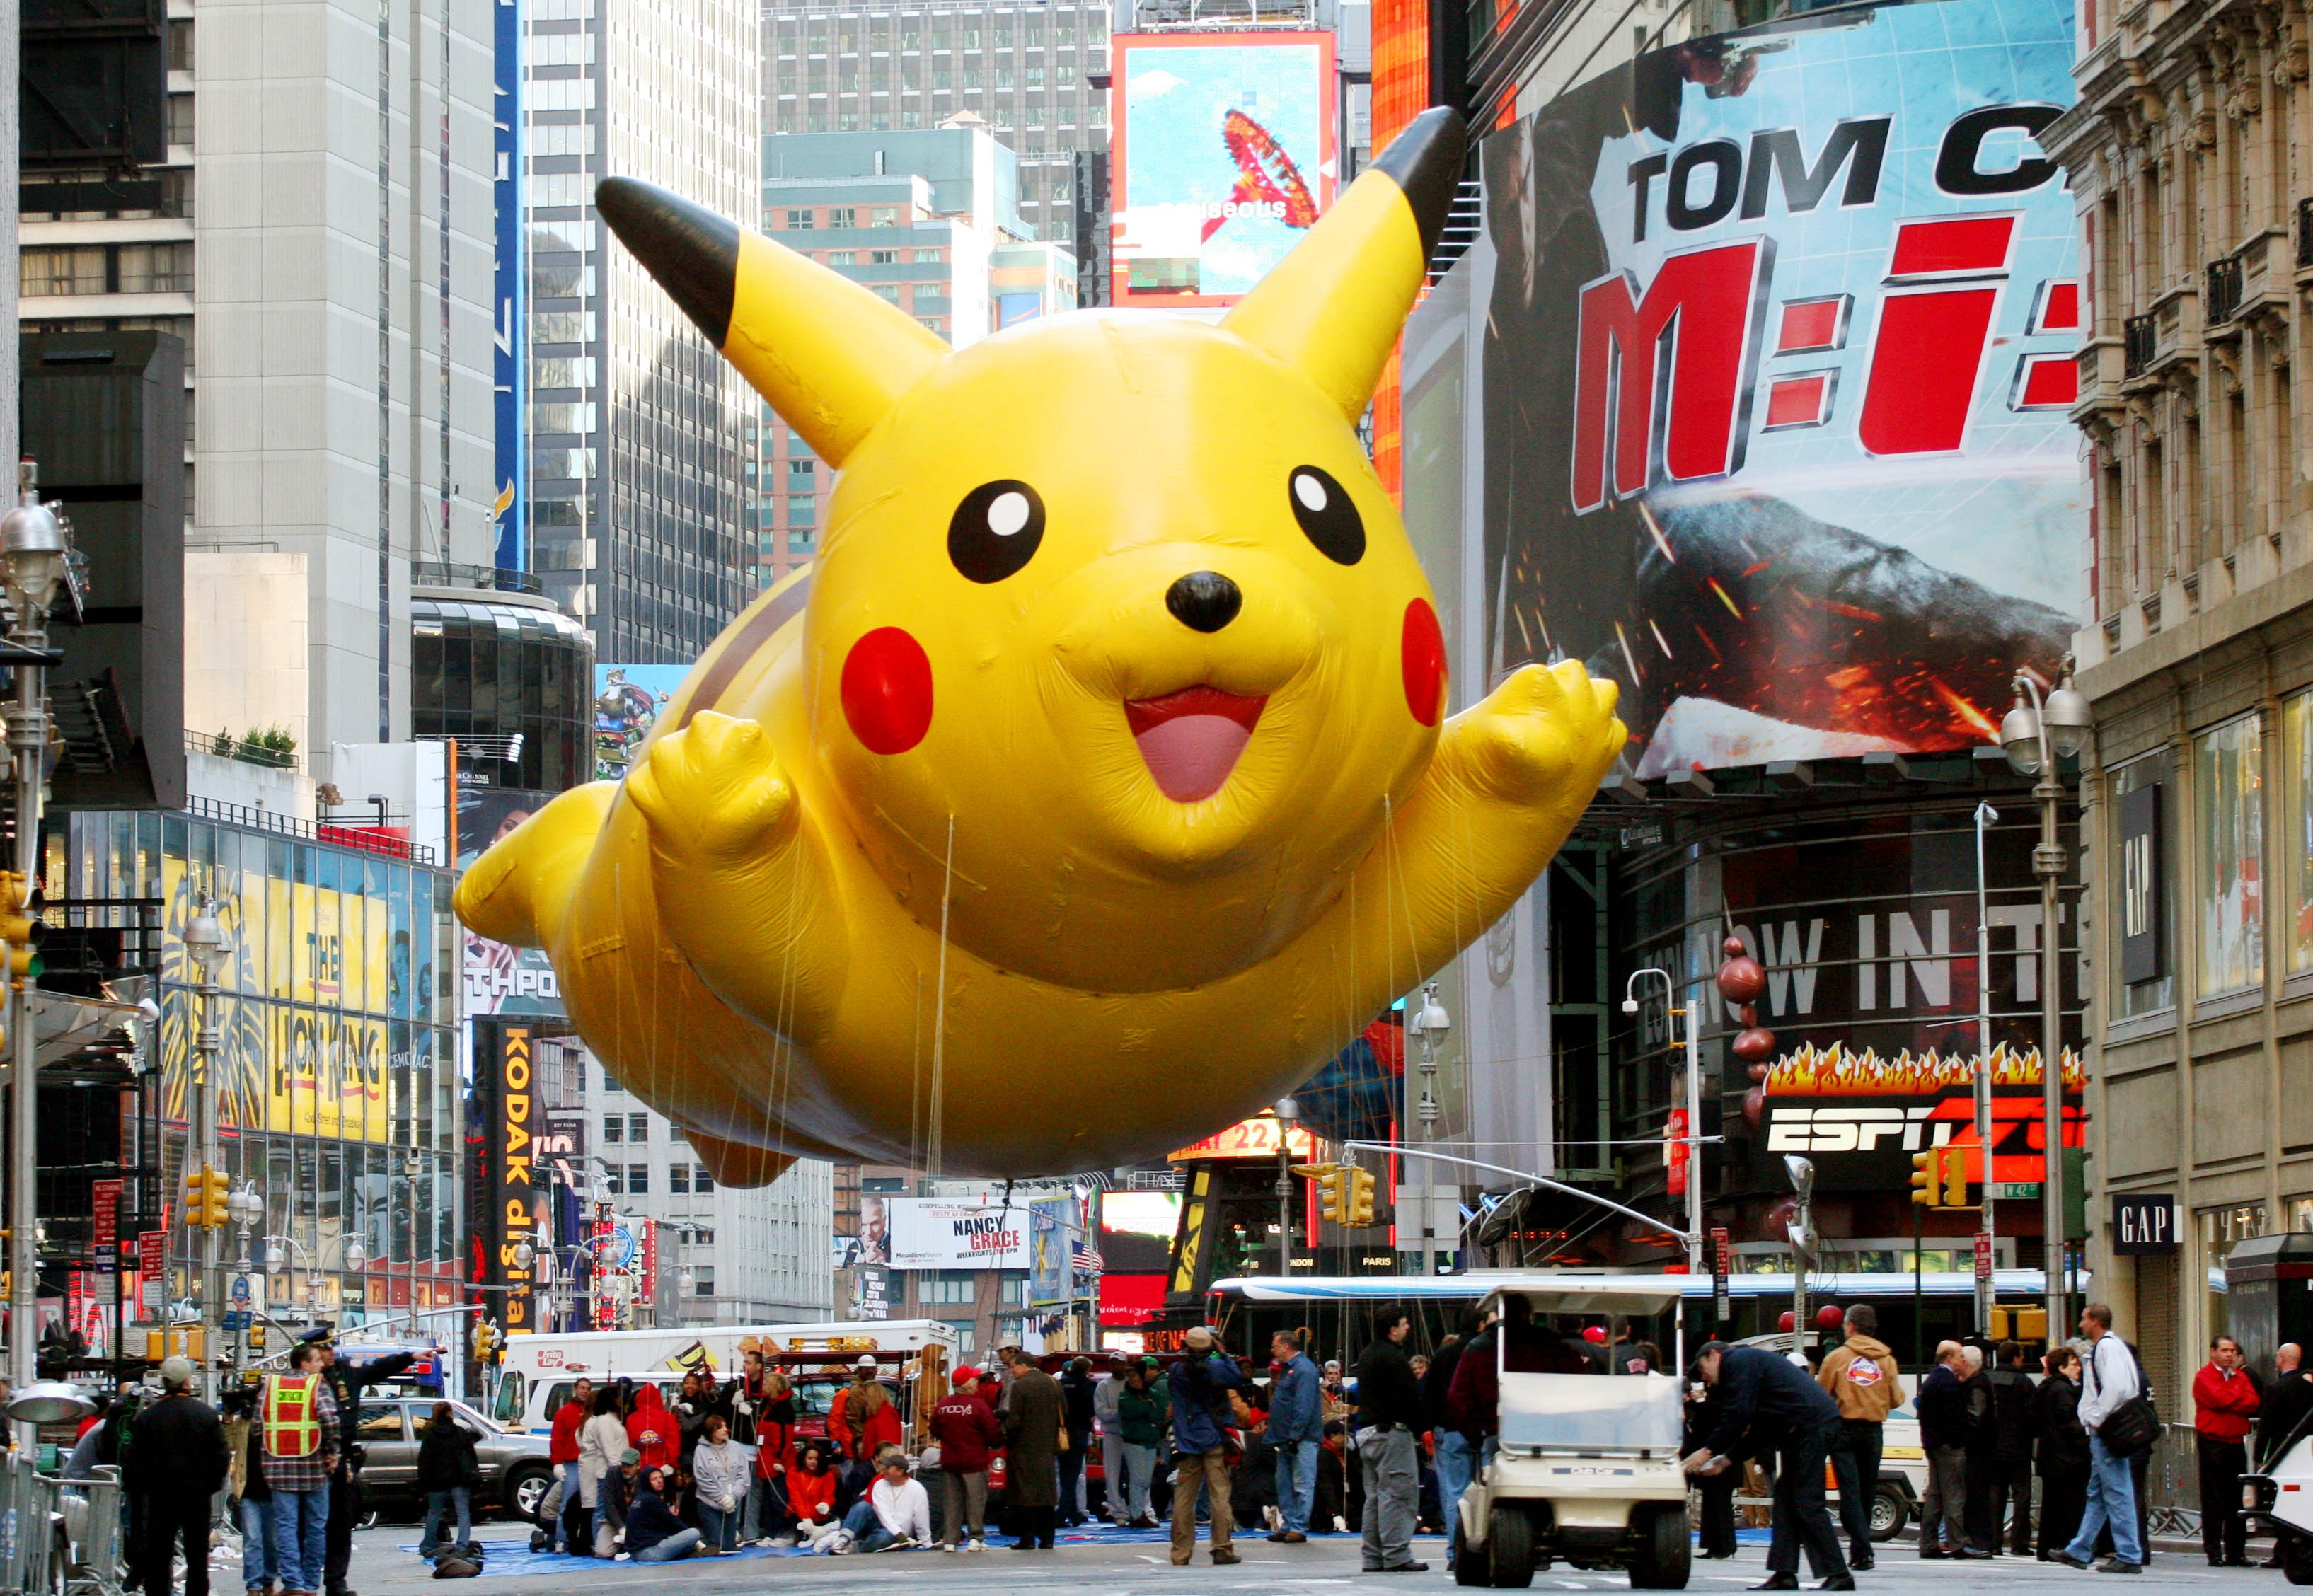 Hong Kong Pikachu fans march in protest against name ...